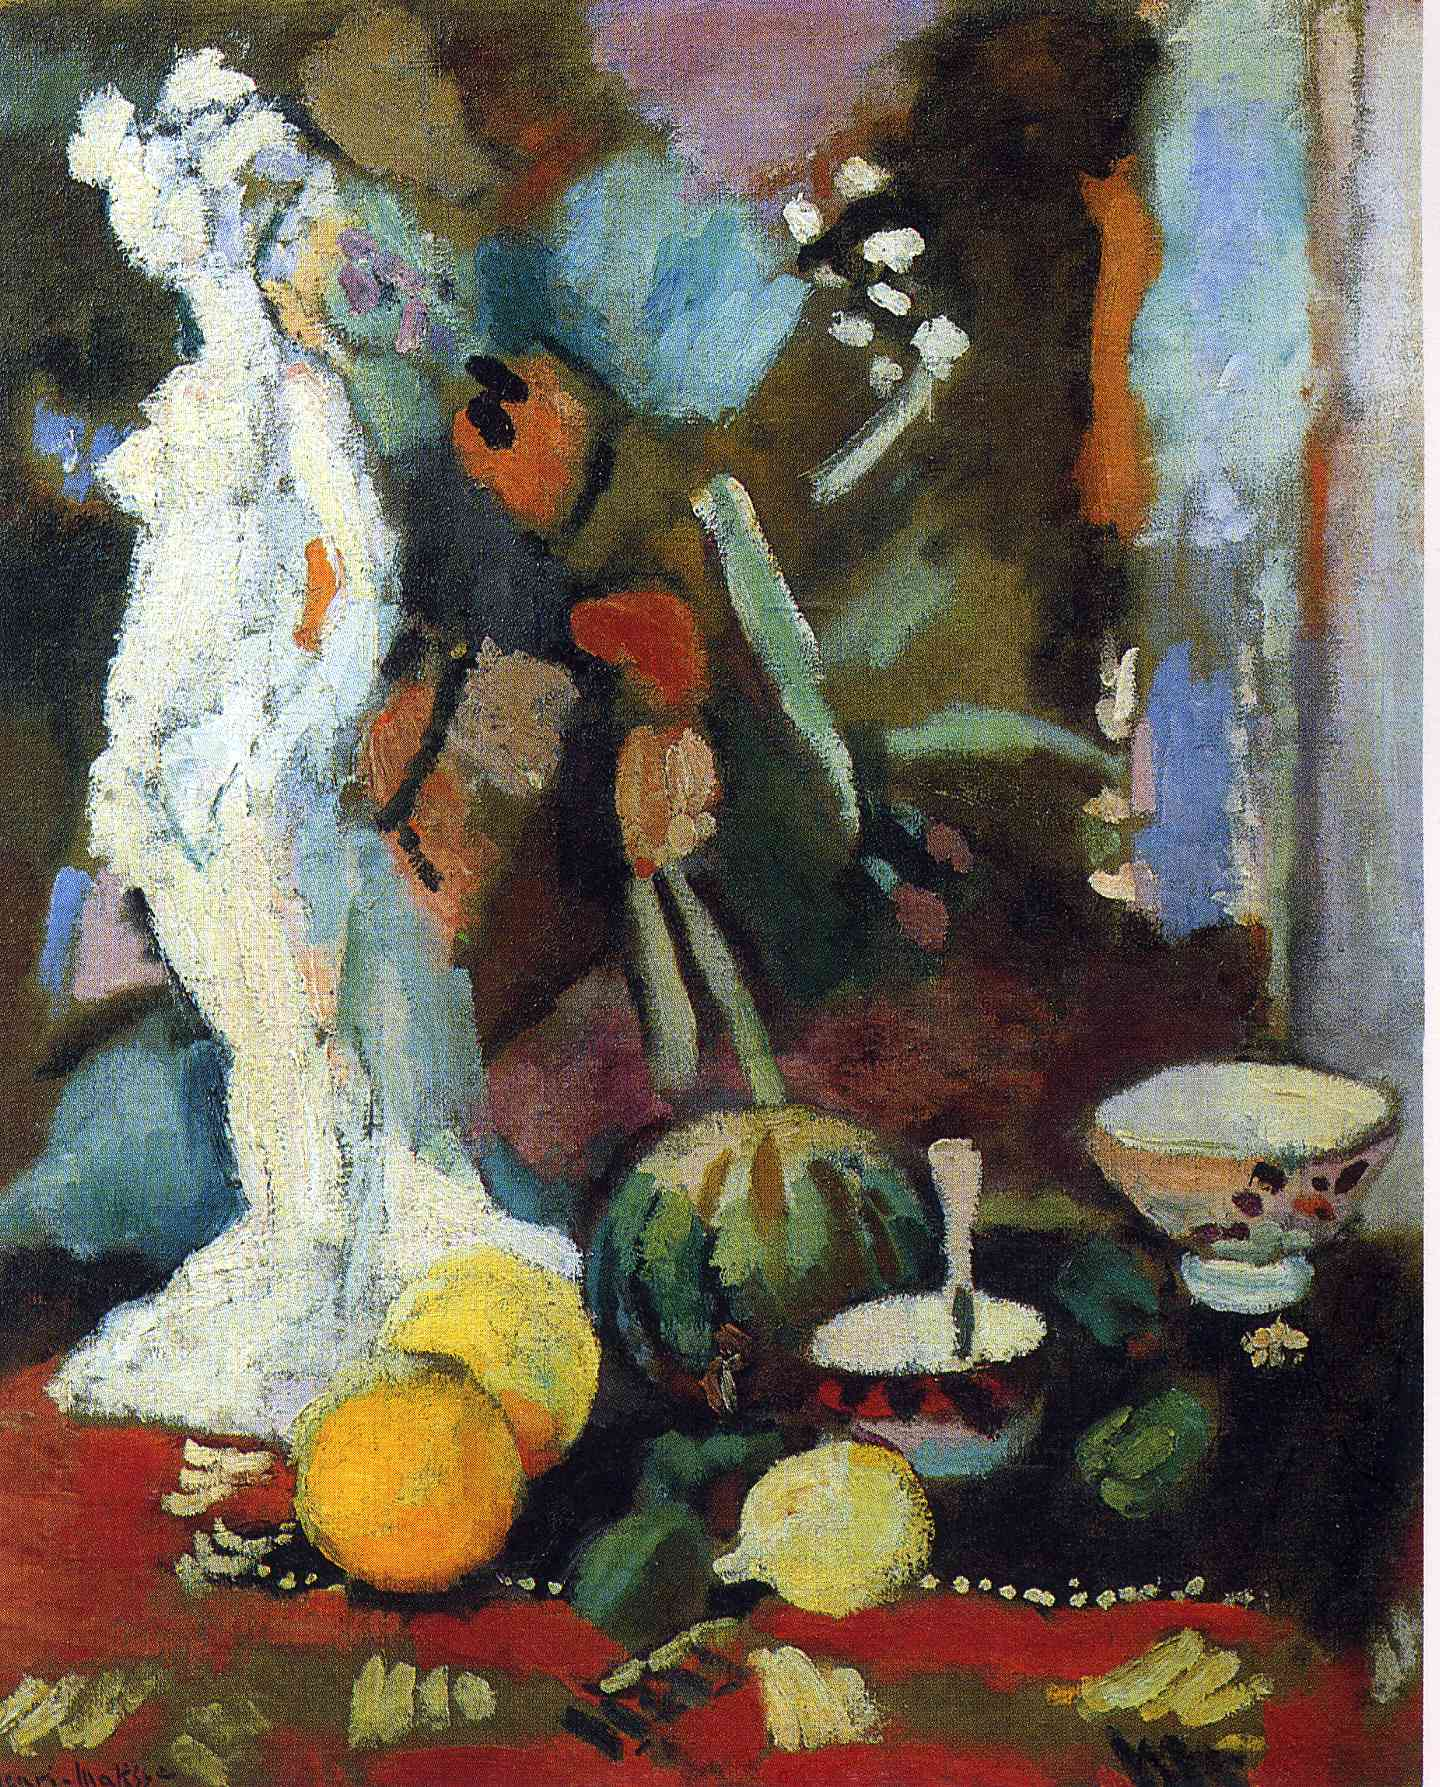 Henri Matisse - Still Life with Statuette 1906